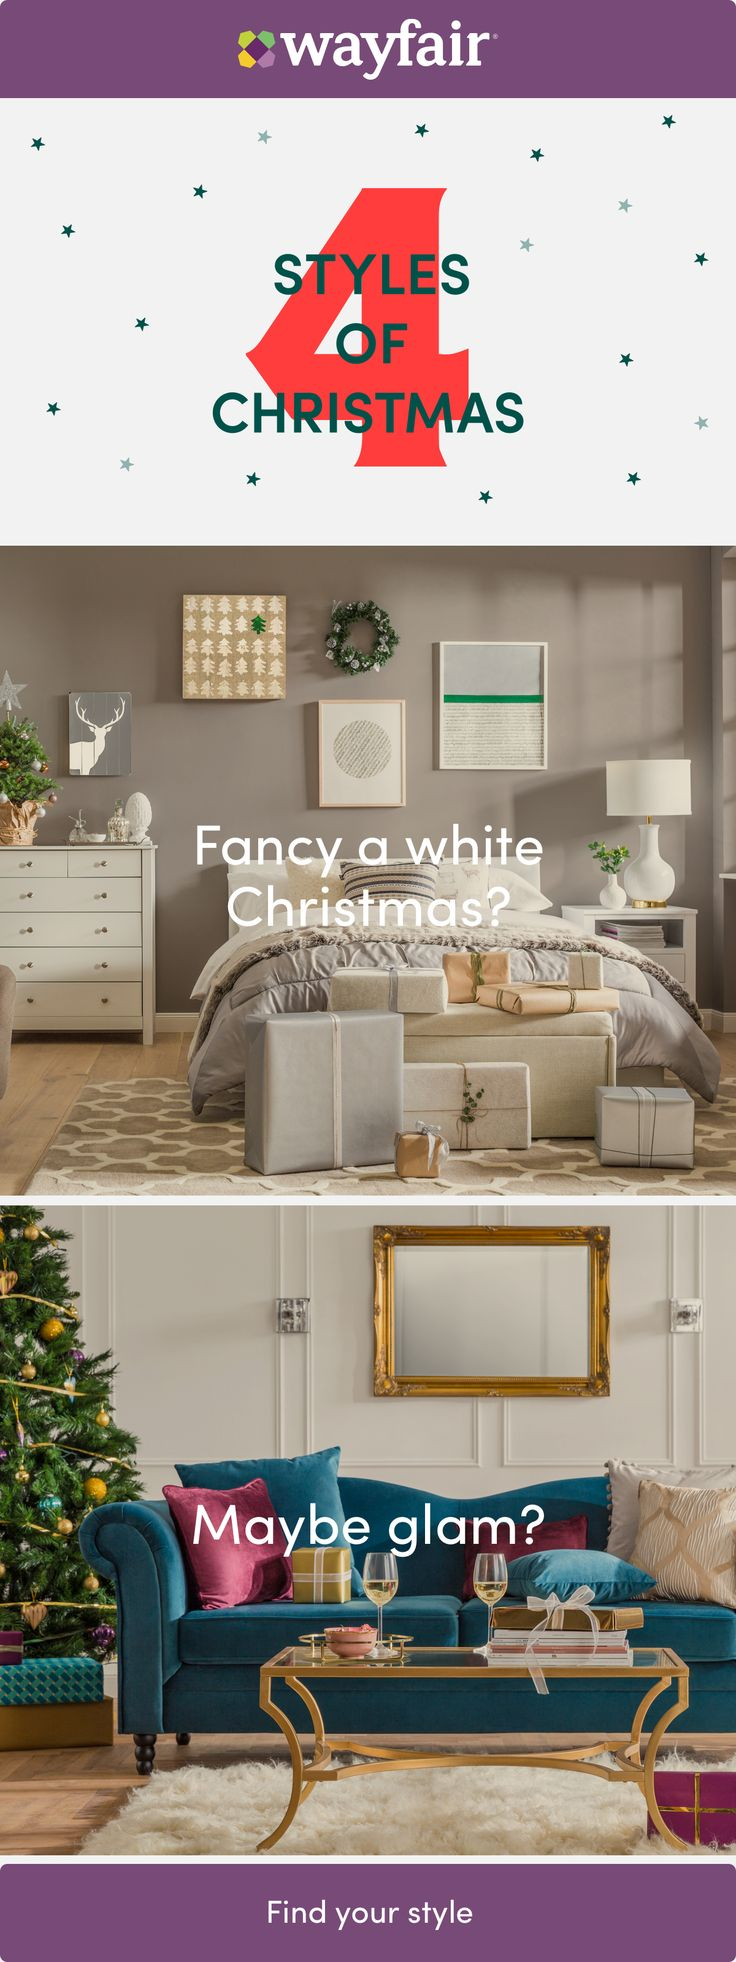 4 Christmas Styles: Traditional Christmas, White Christmas, Glam Christmas and Scandi Christmas. Visit Wayfair UK and sign up today to get access to exclusive deals everyday up to 70% off. Free shipping on all orders over £40.